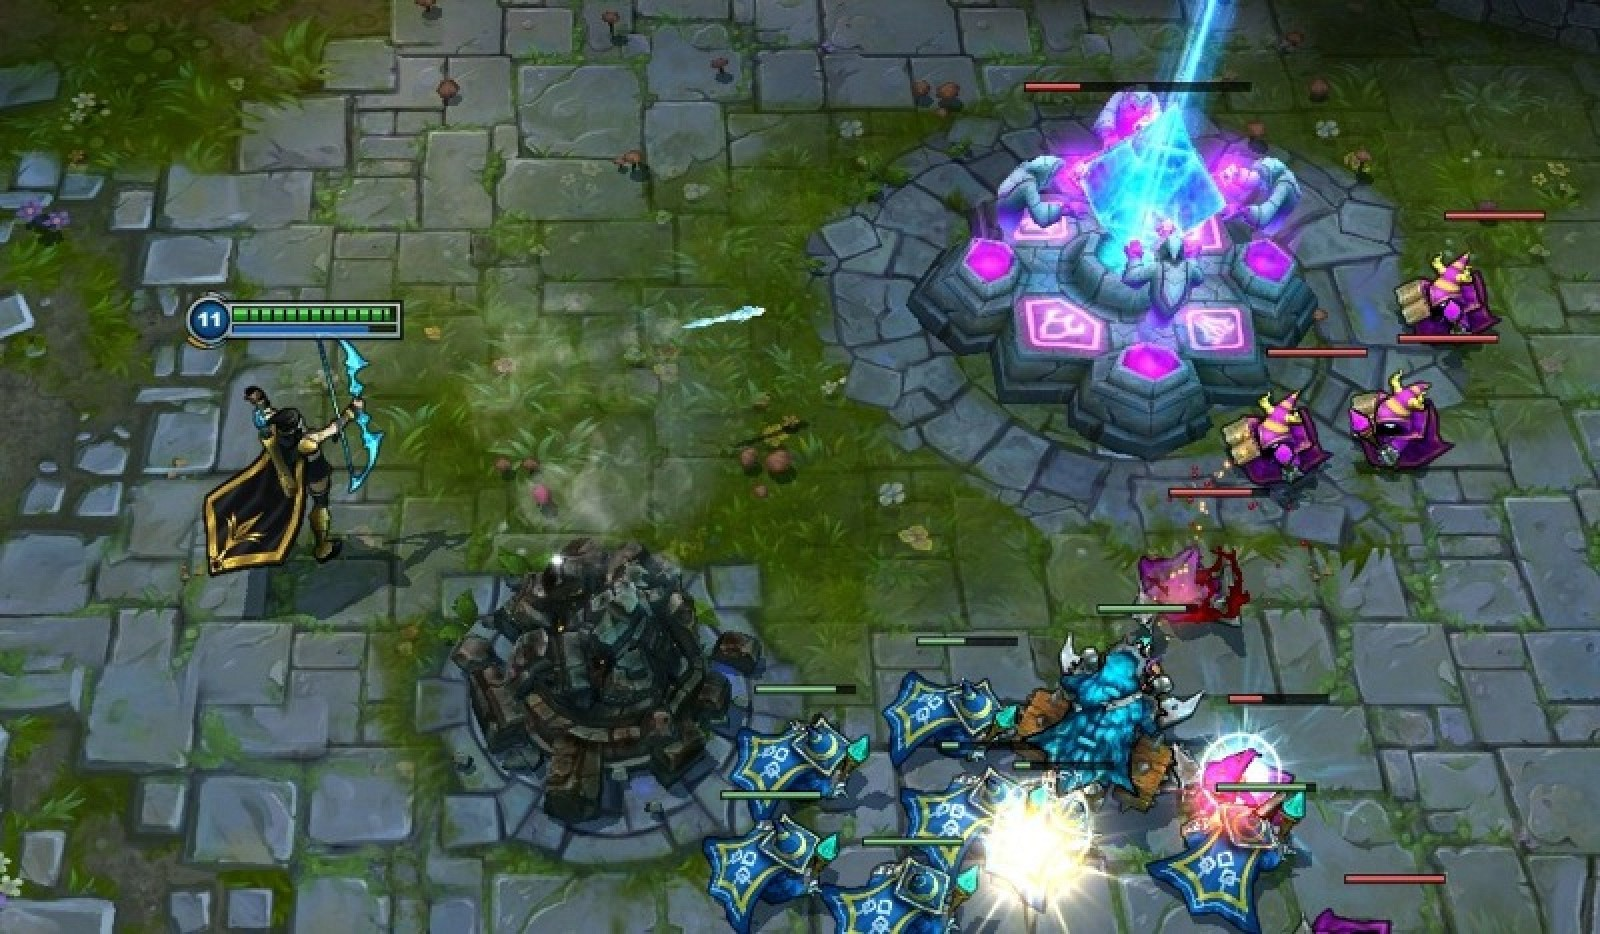 how to download league of legends on macbook air 2015